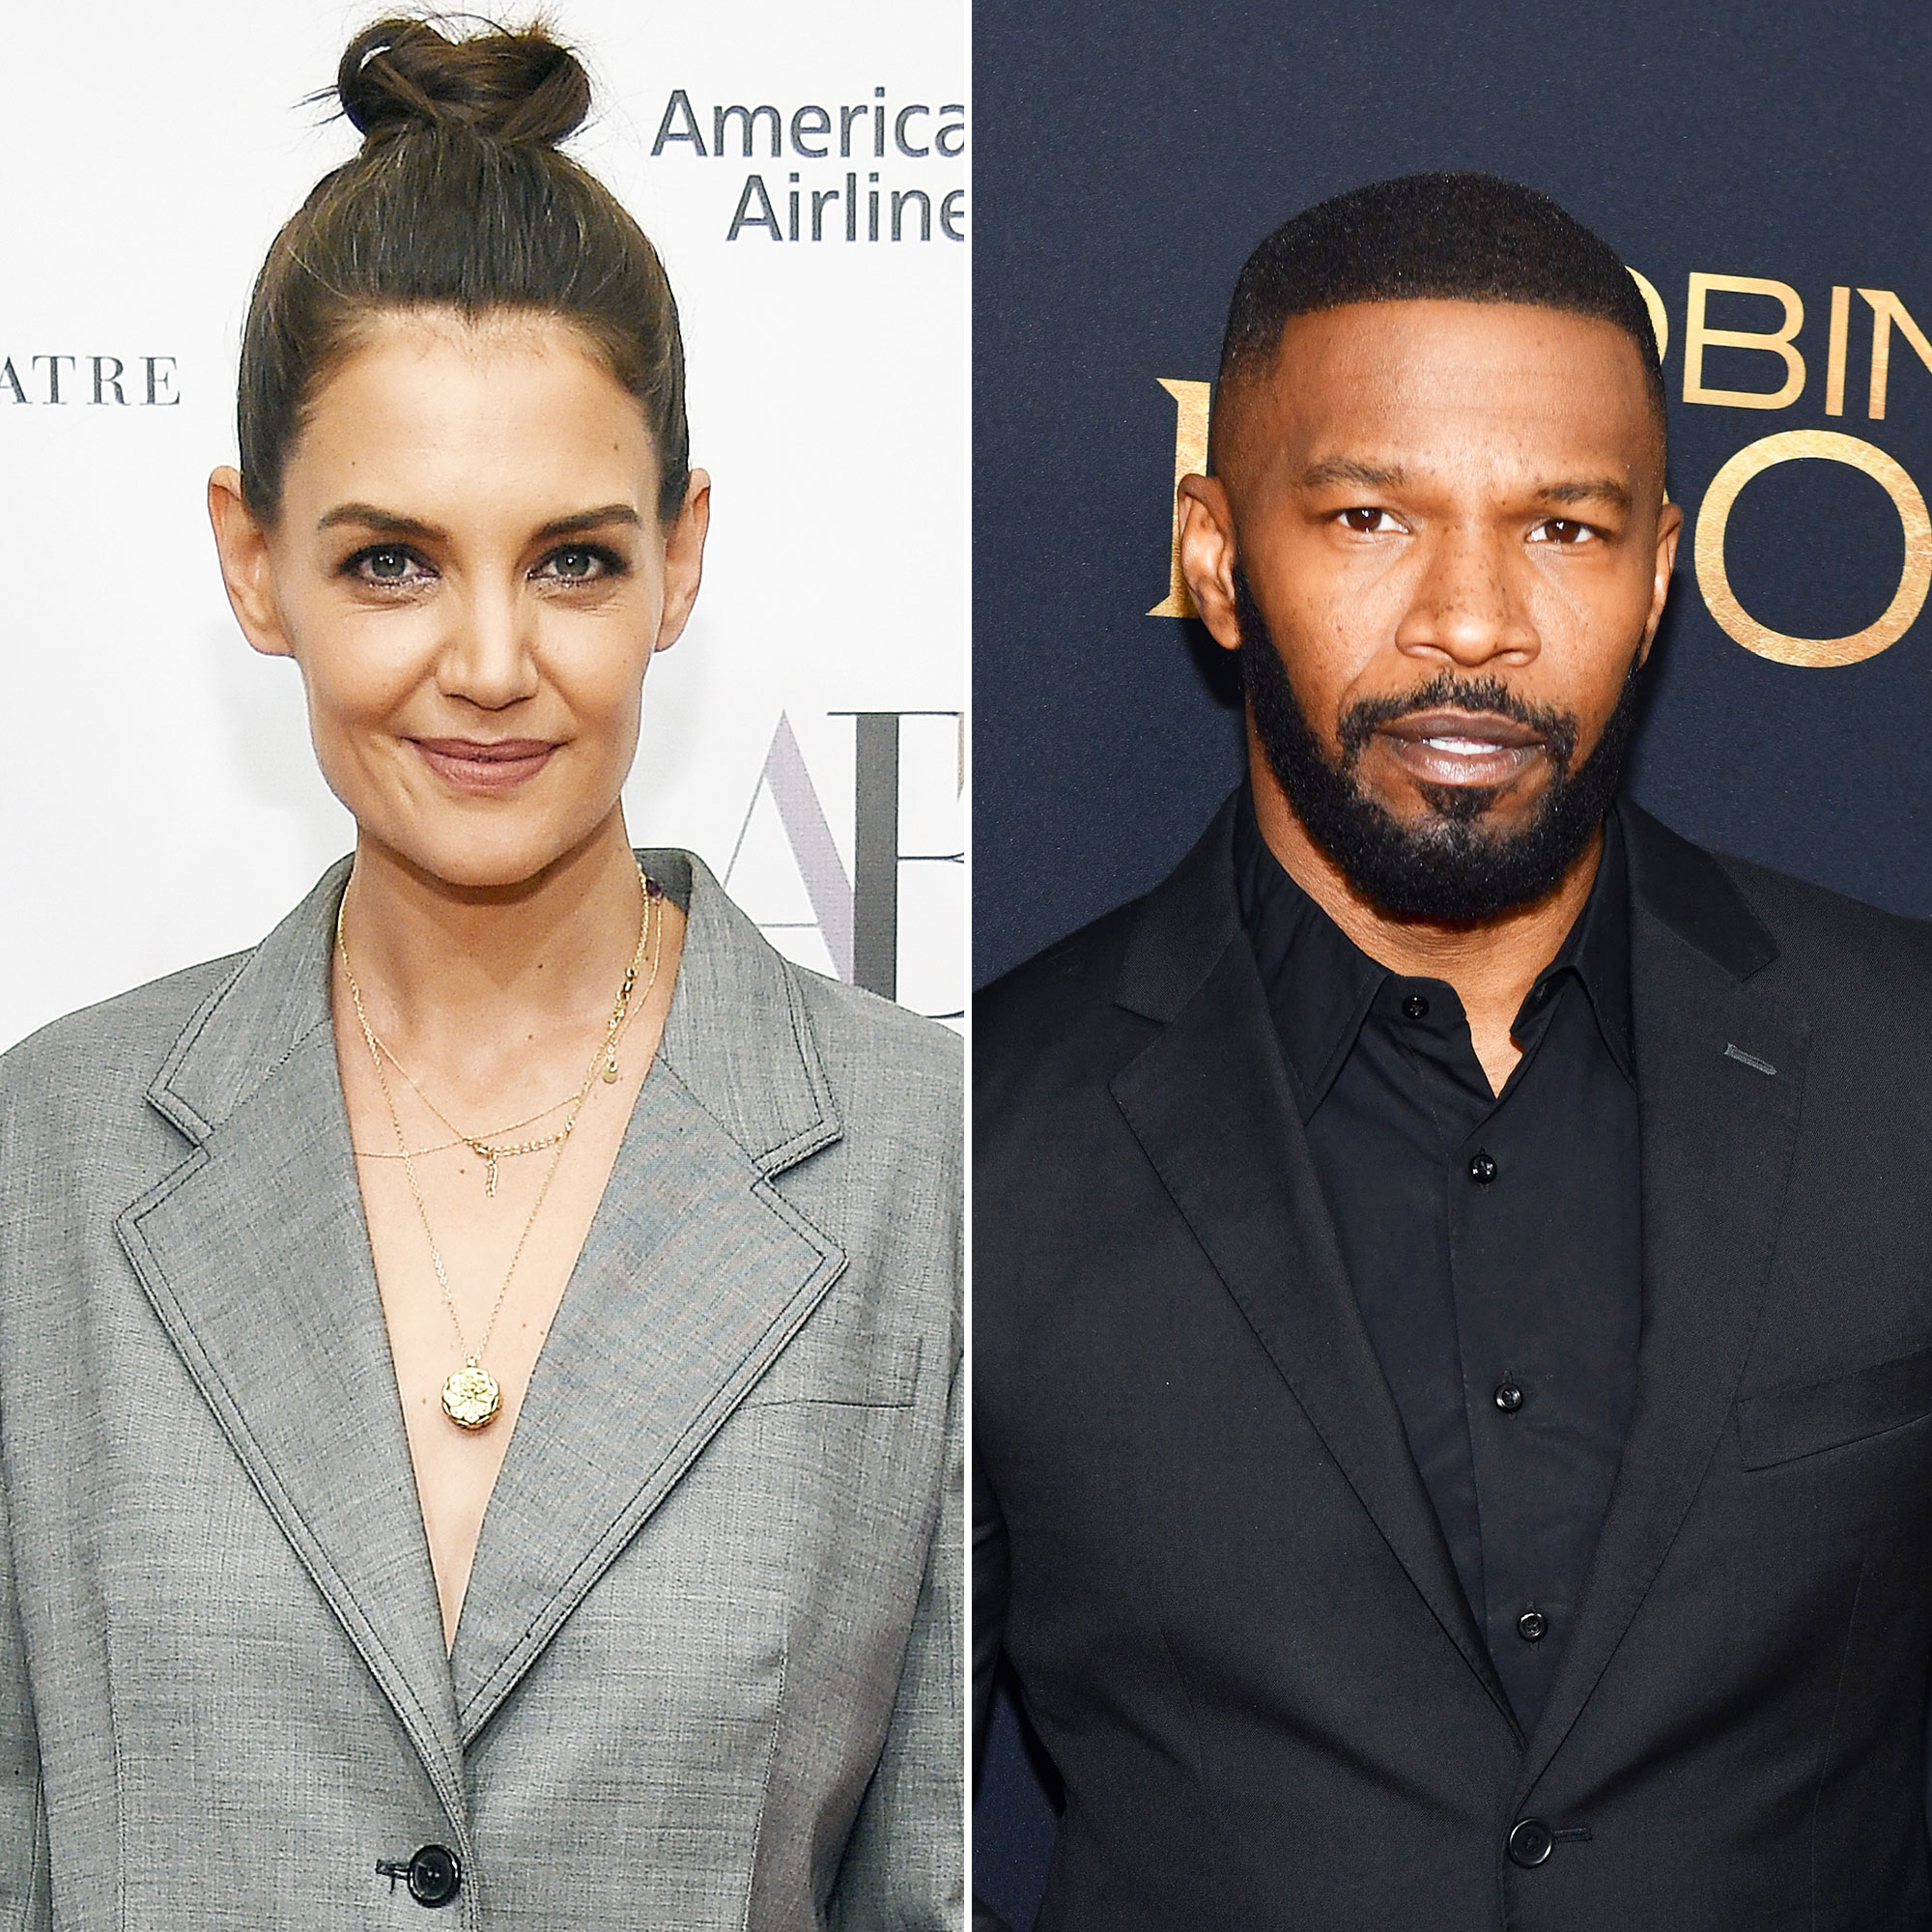 Katie Holmes Jamie Foxx Relationship Timeline Romantic Stroll - The twosome showcased their love once more when they were seen holding hands in the Upper West Side neighborhood of NYC. Holmes kept it casual in a gray sweatsuit, while Foxx rocked an all-black ensemble.